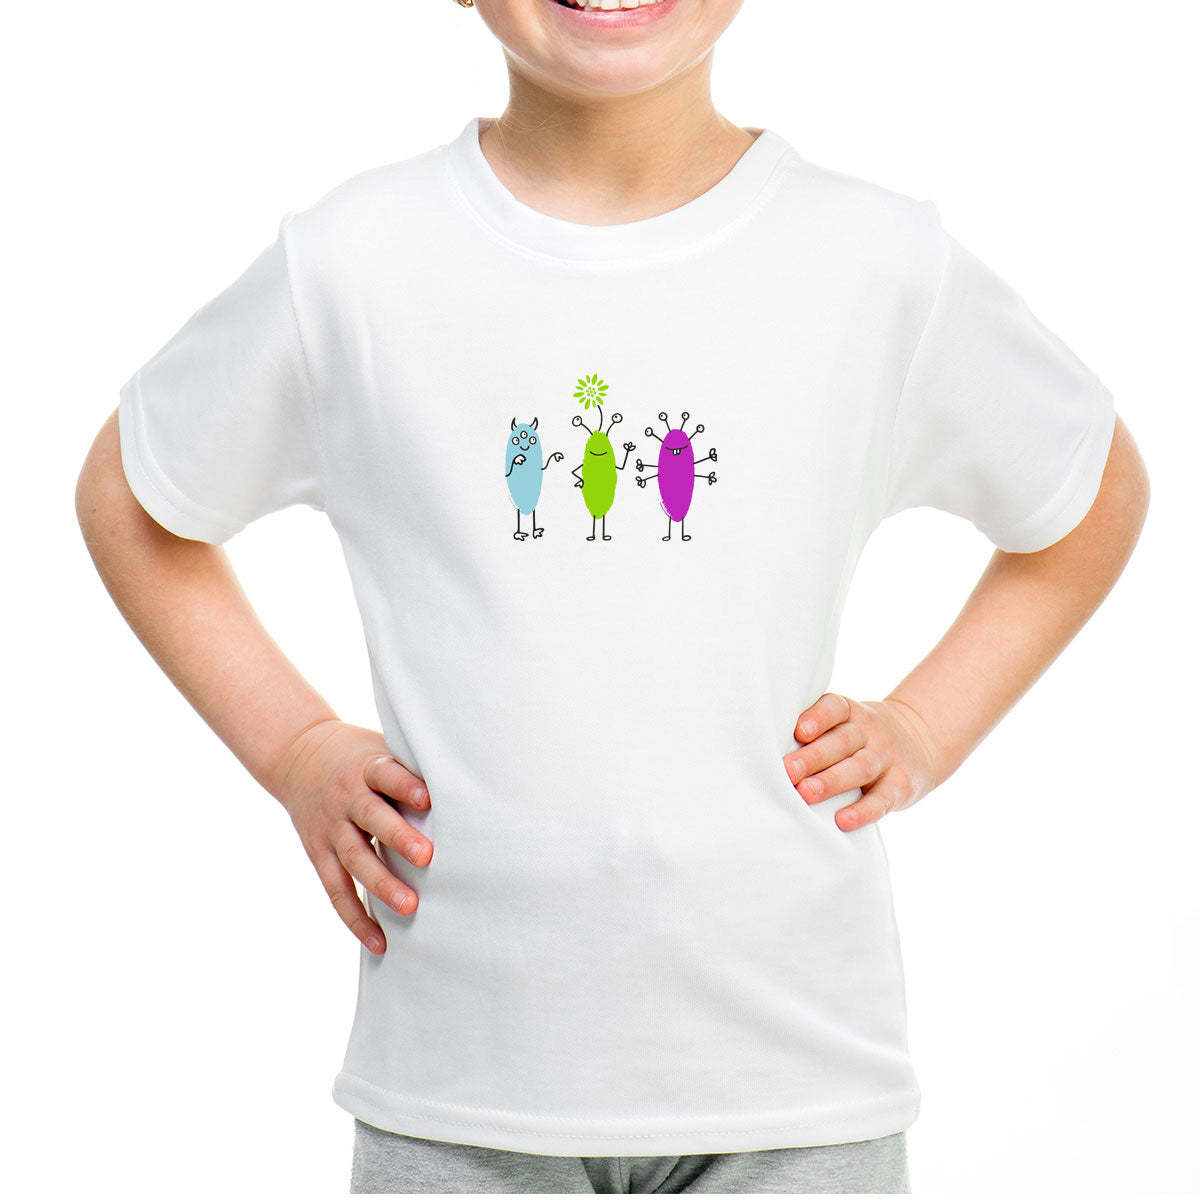 Daisy Appeal Kids Charity T-Shirt